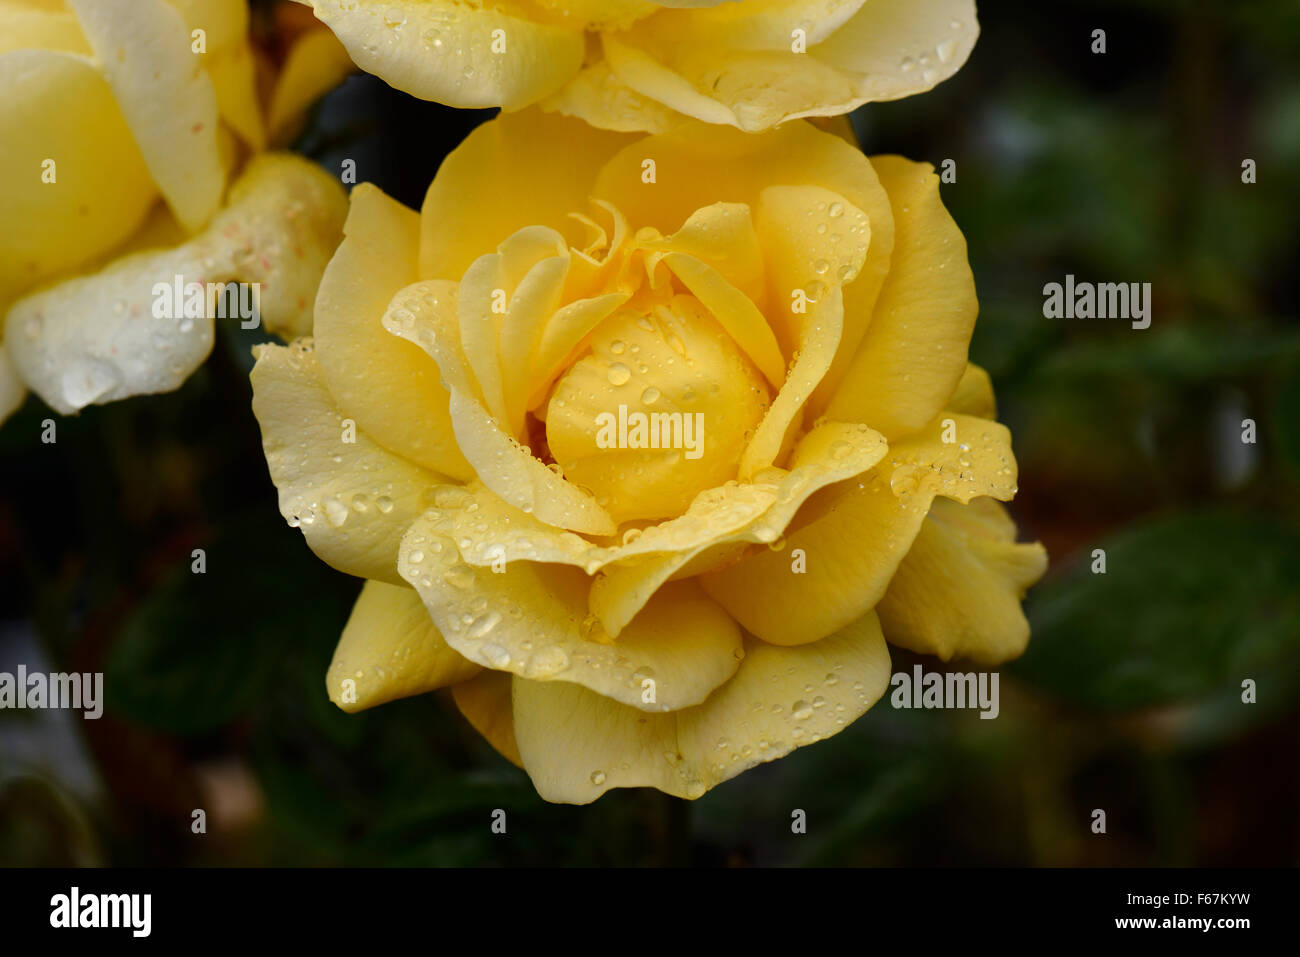 Yellow standard rose bloom 'ArthurBell' fragrant with rain drops on the petals, Berkshire, August - Stock Image